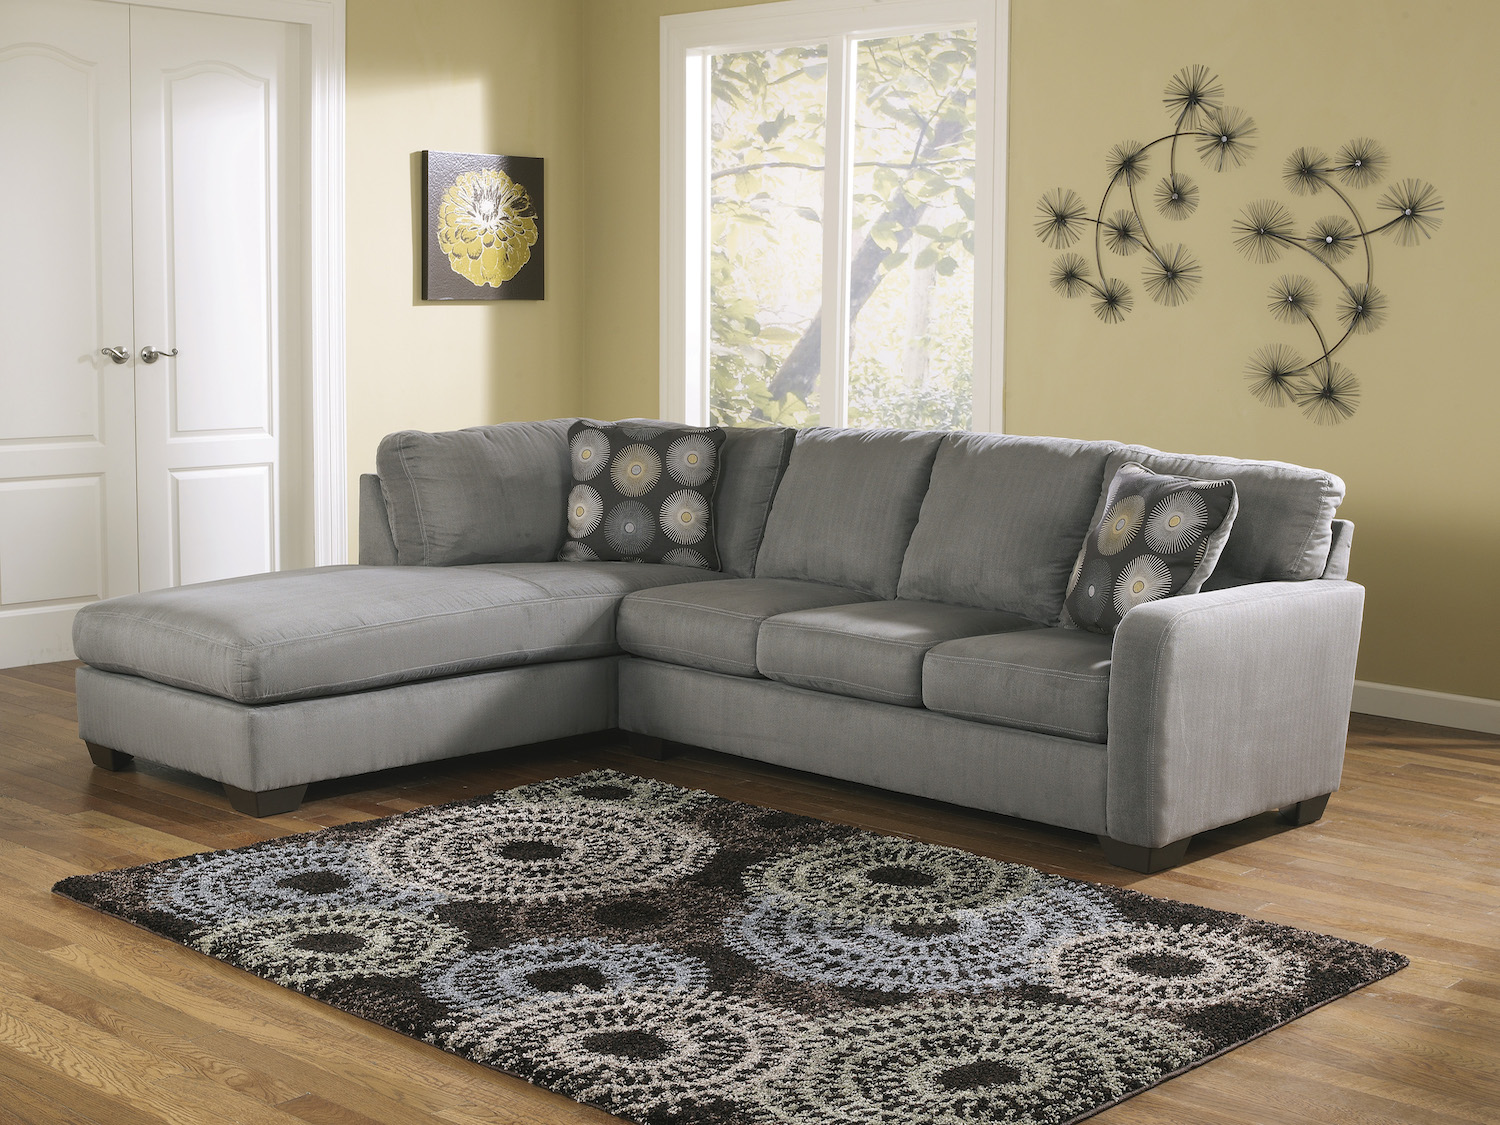 Zella Sectional, 70200, Sectionals by Midha Furniture to Brampton, Mississauga, Etobicoke, Toronto, Scraborough, Caledon, Oakville, Markham, Ajax, Pickering, Oshawa, Richmondhill, Kitchener, Hamilton and GTA area